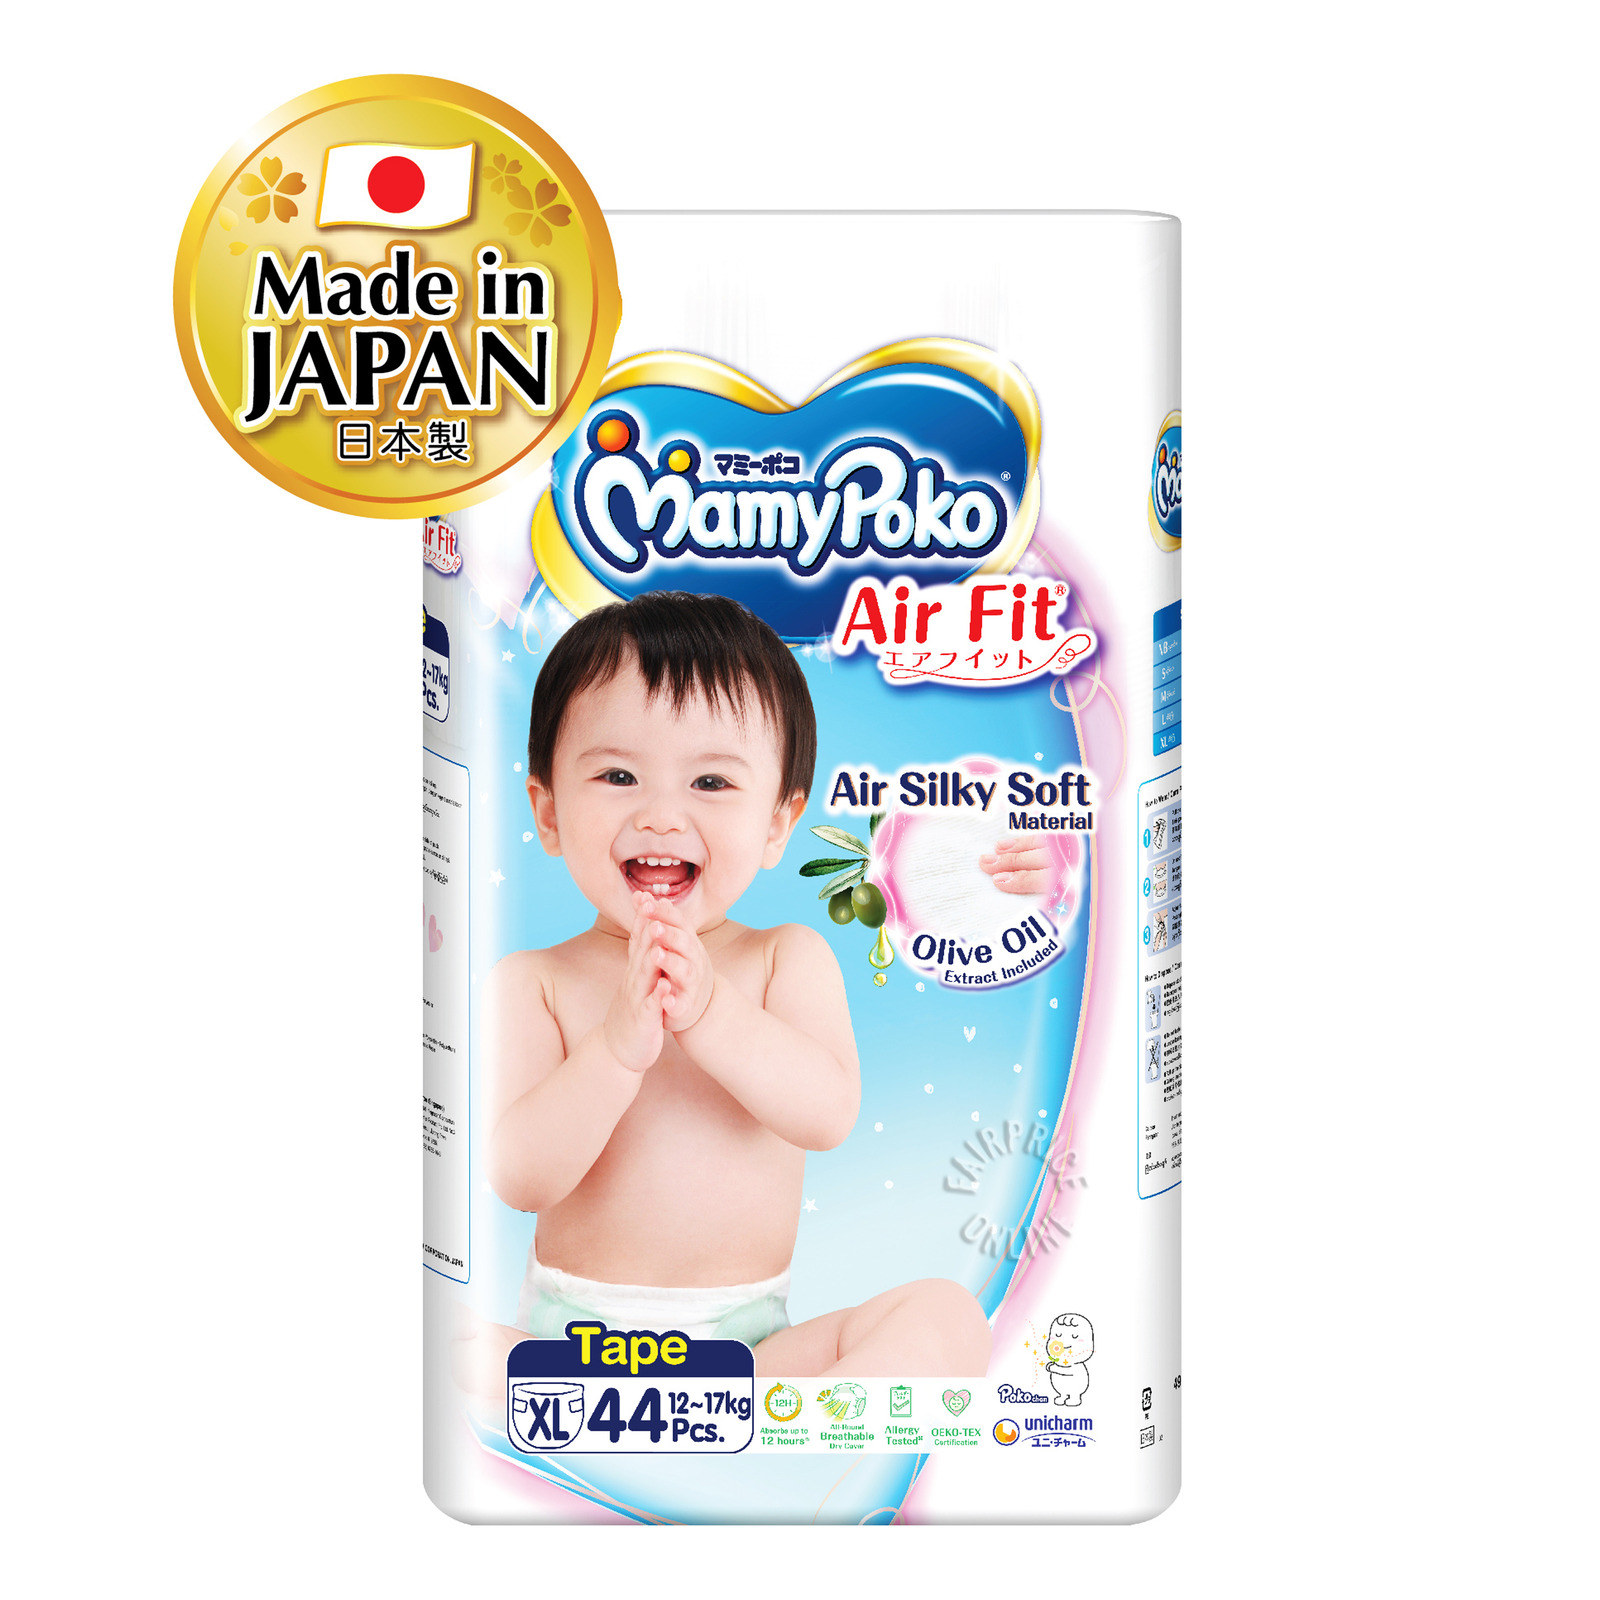 MamyPoko Air Fit Diapers - XL (12 - 17kg)